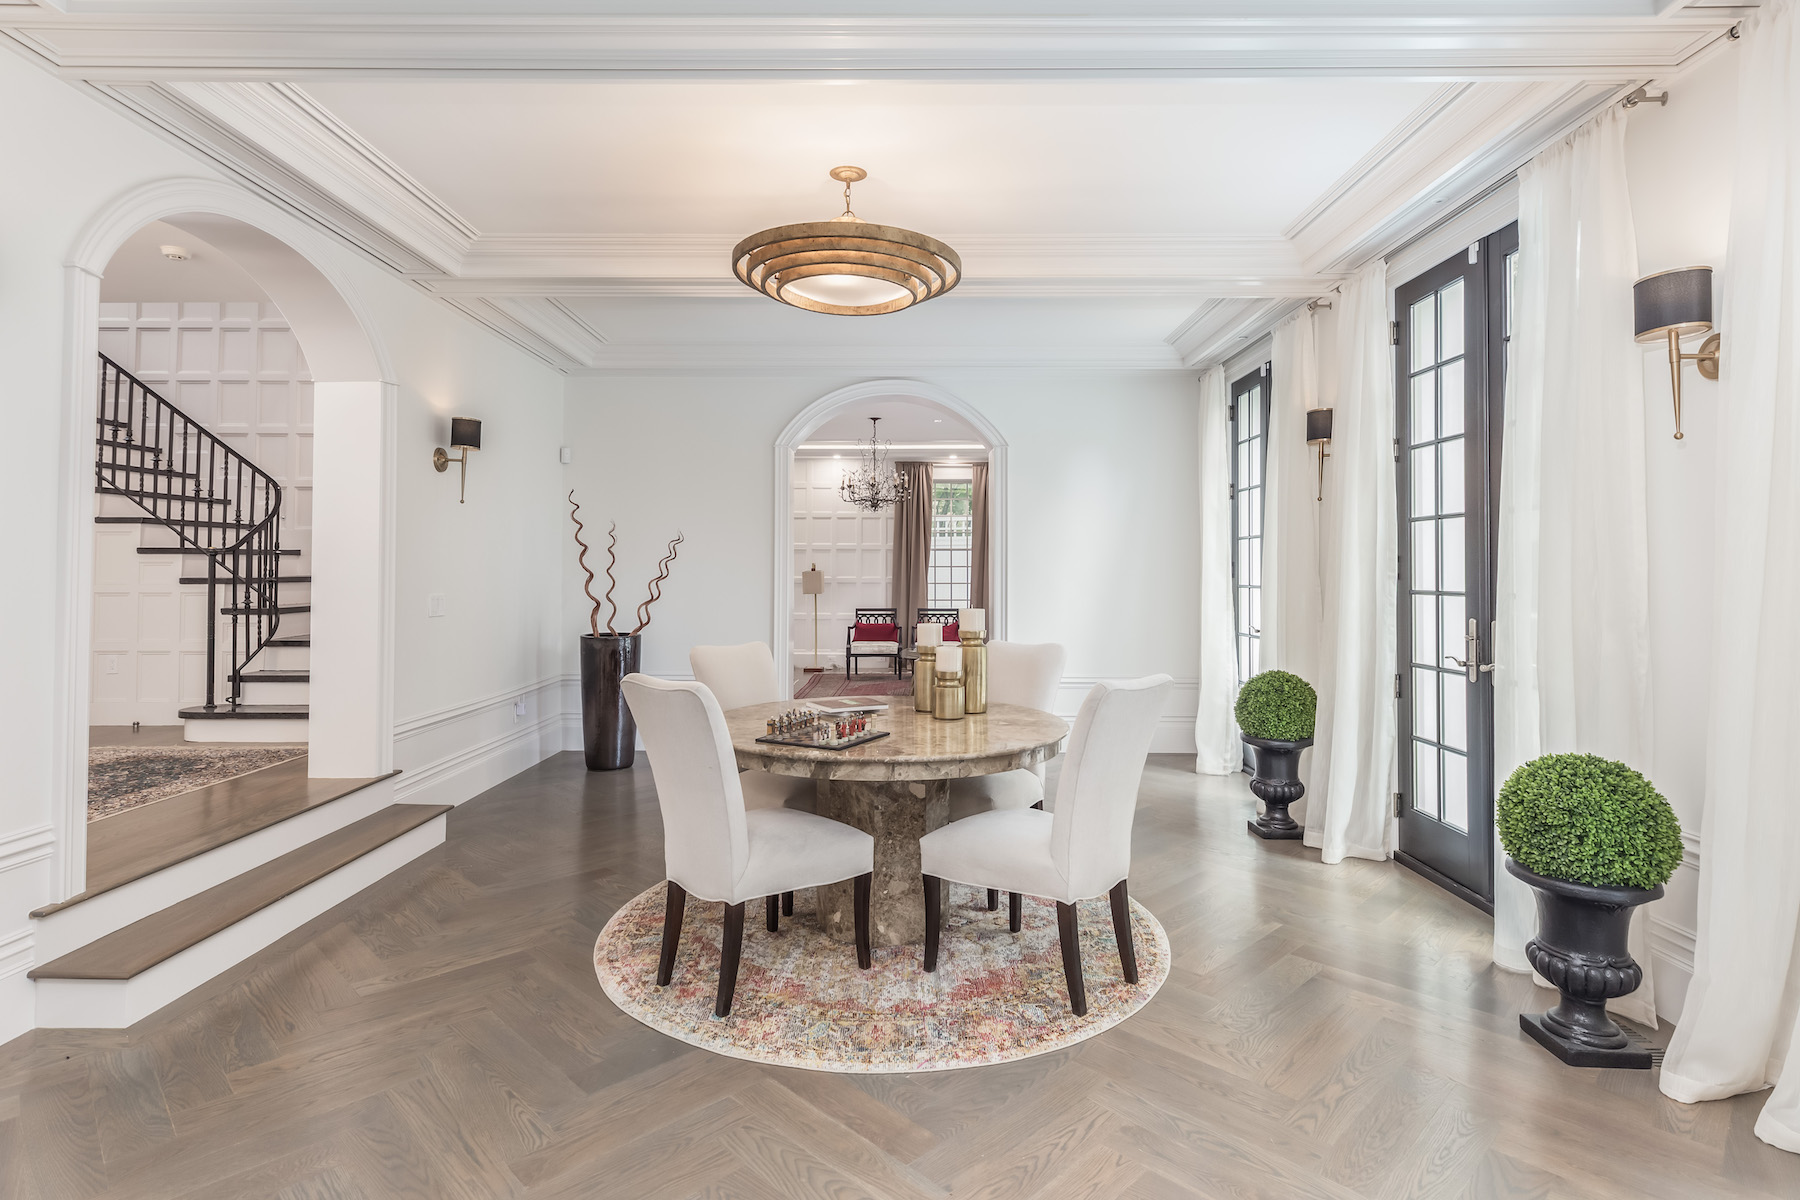 Single Family Homes for Sale at Magnificent Custom Residence 439 Chestnut Hill Avenue Brookline, Massachusetts 02445 United States